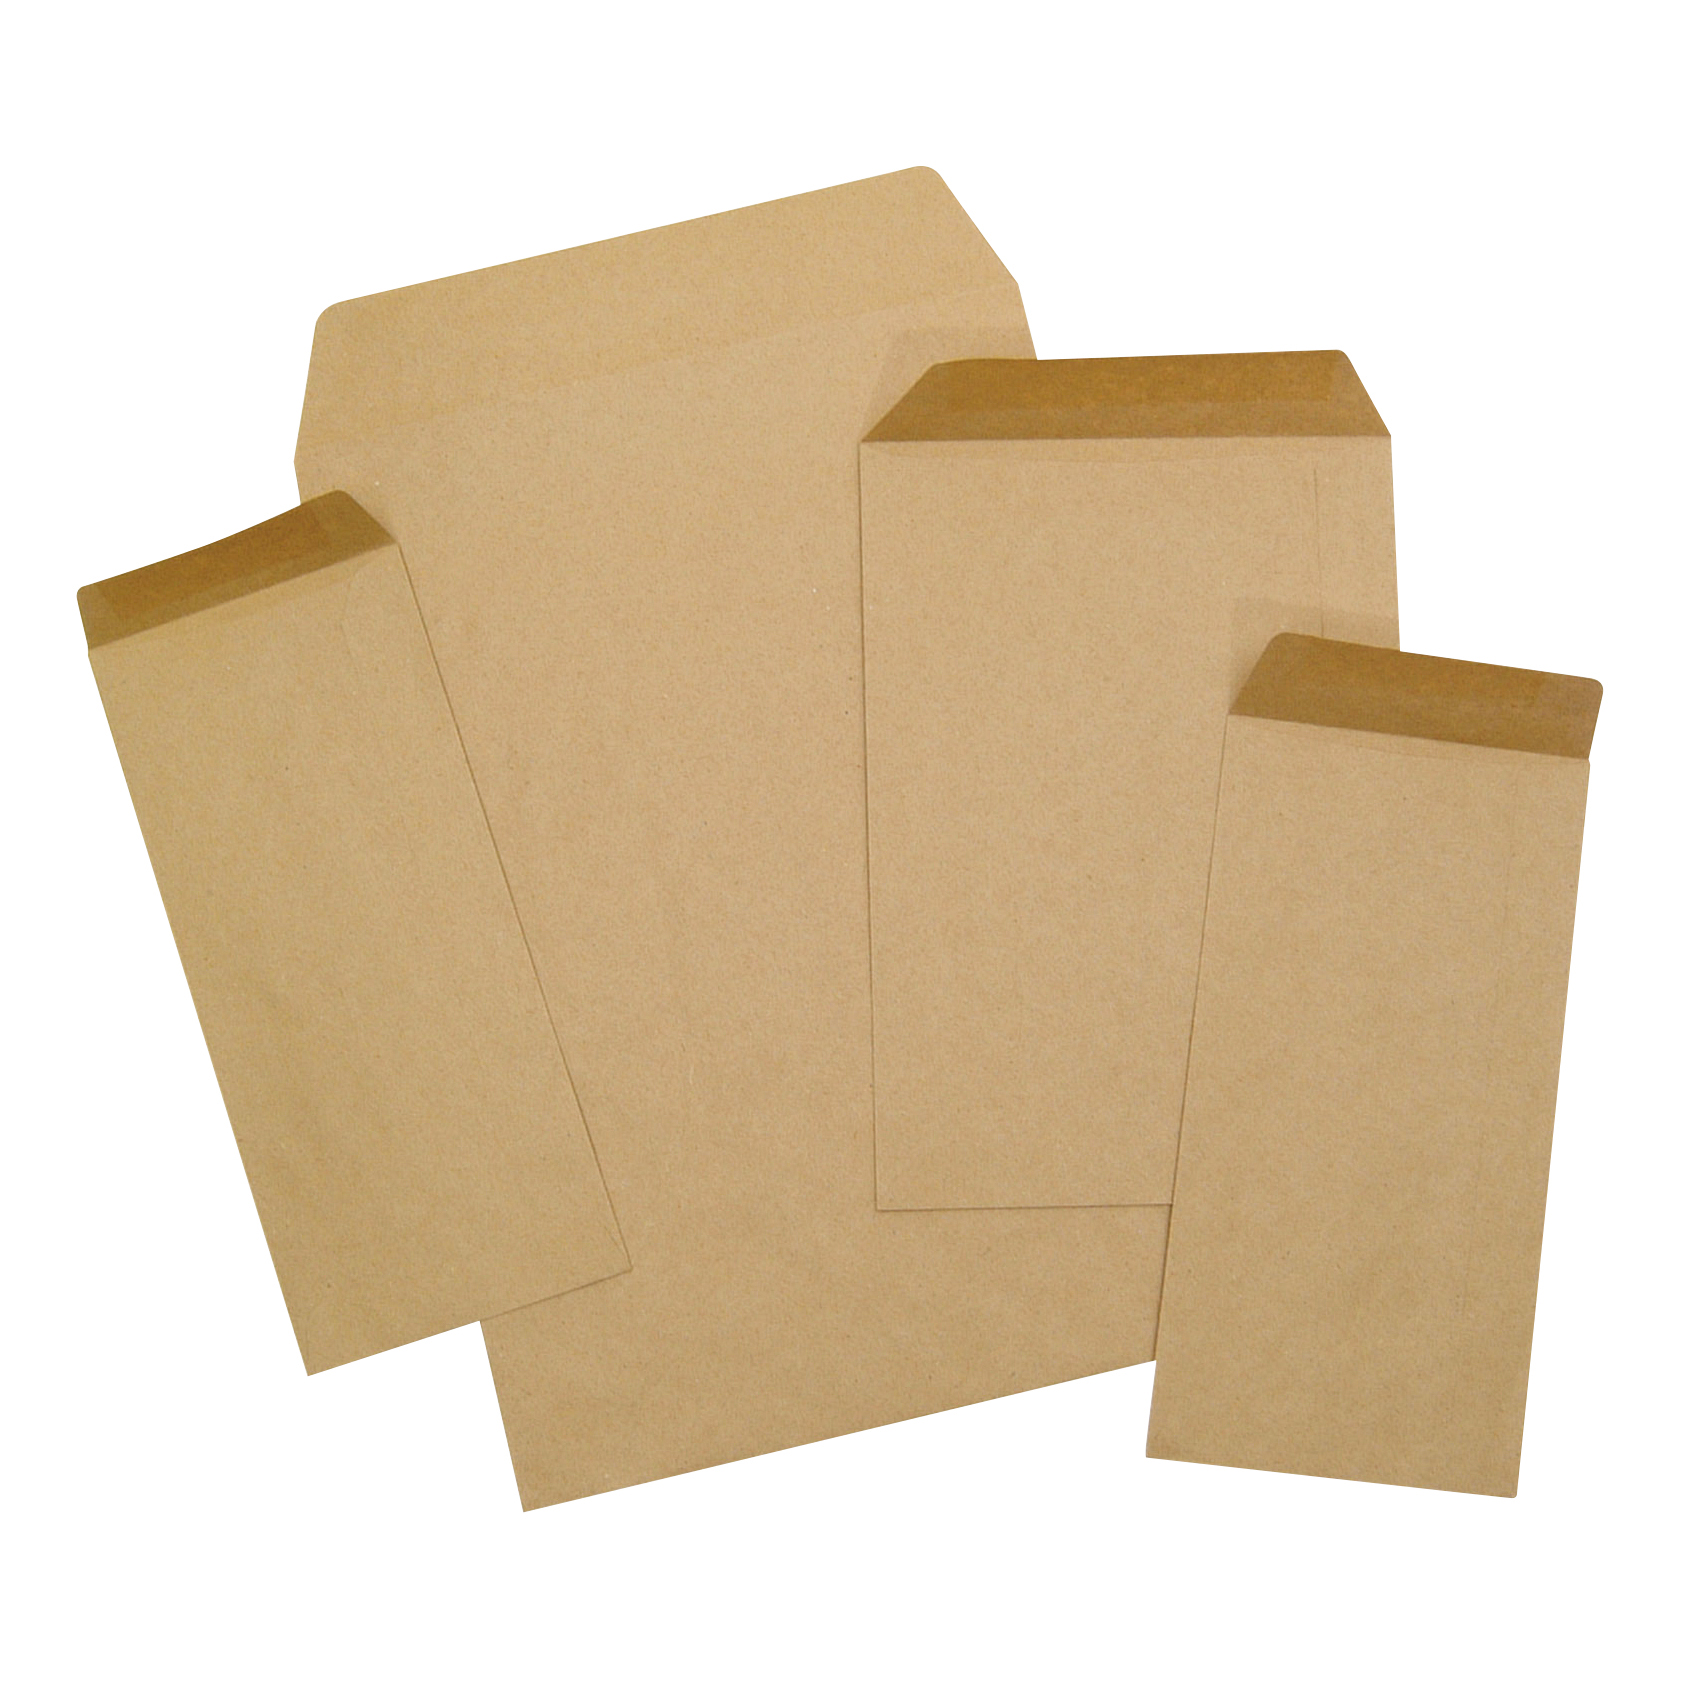 5 Star Office Envelopes Recycled Lightweight Pocket Gummed 80gsm Manilla DL [Pack 1000]